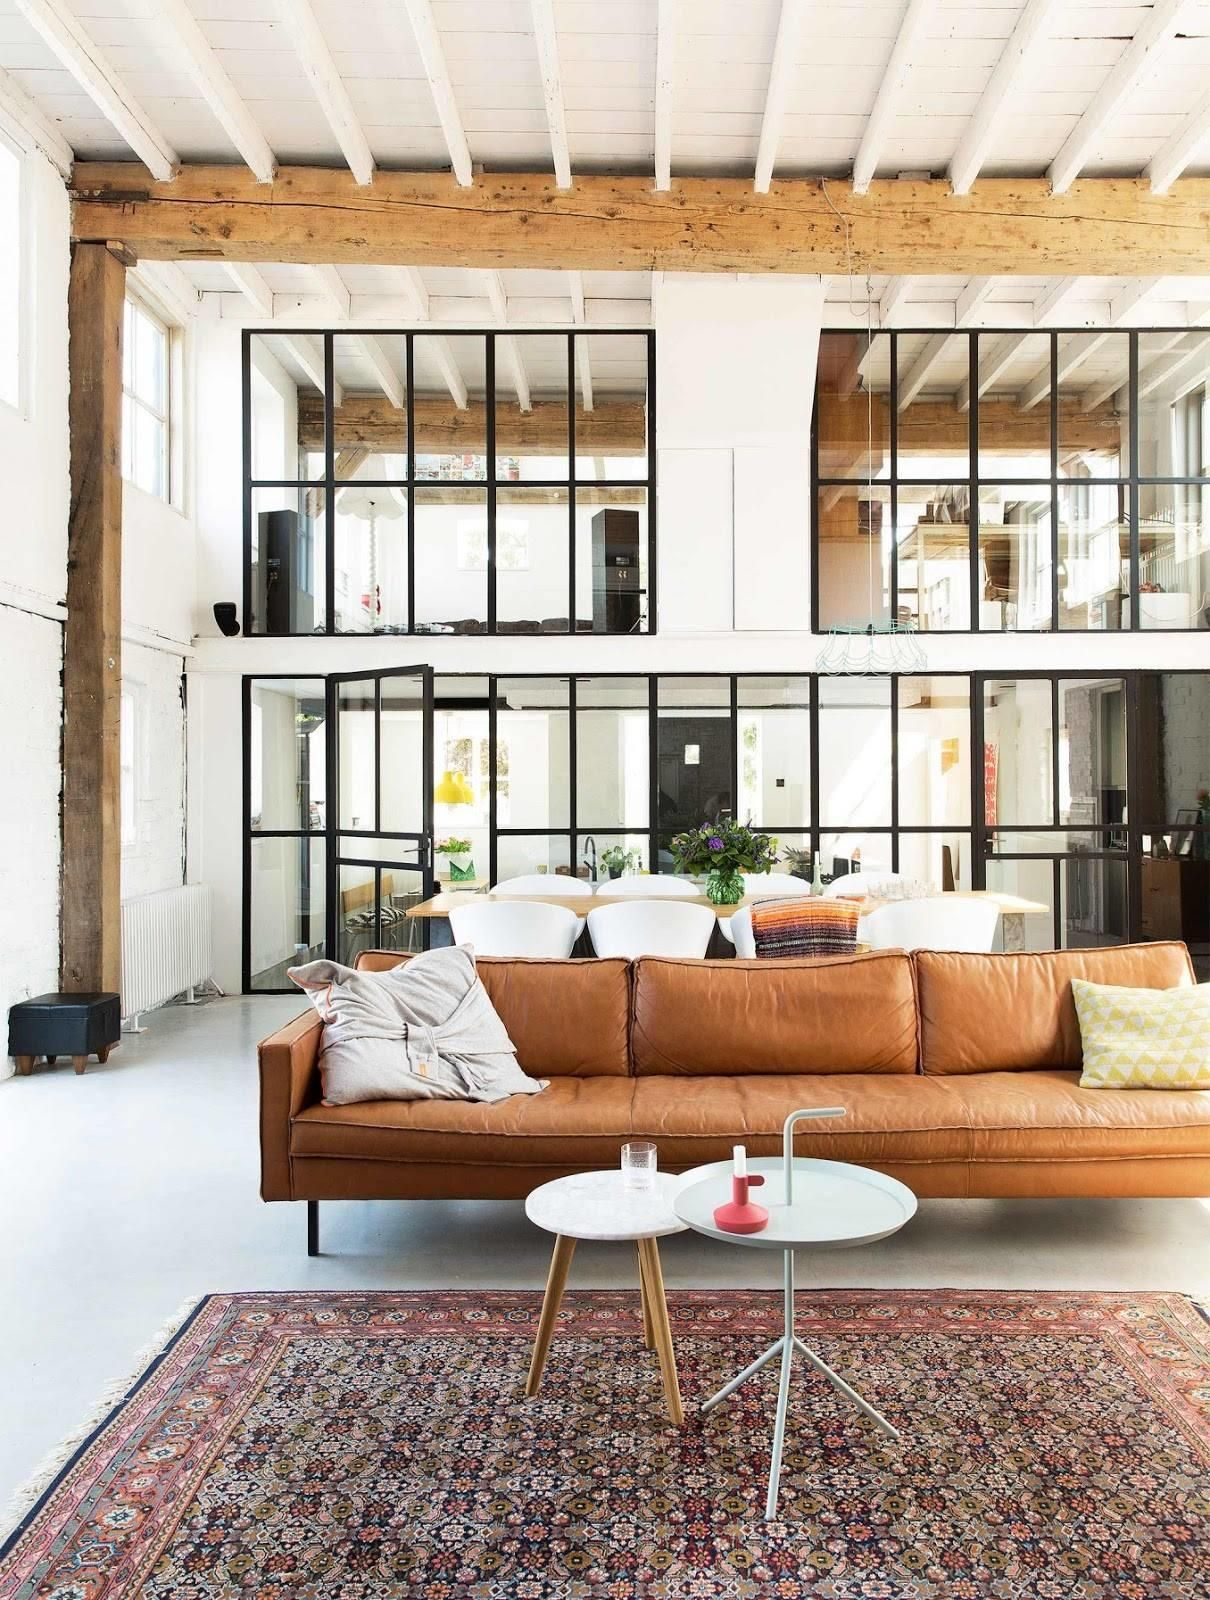 Brown Leather Couch | Interior design, Home, Interior